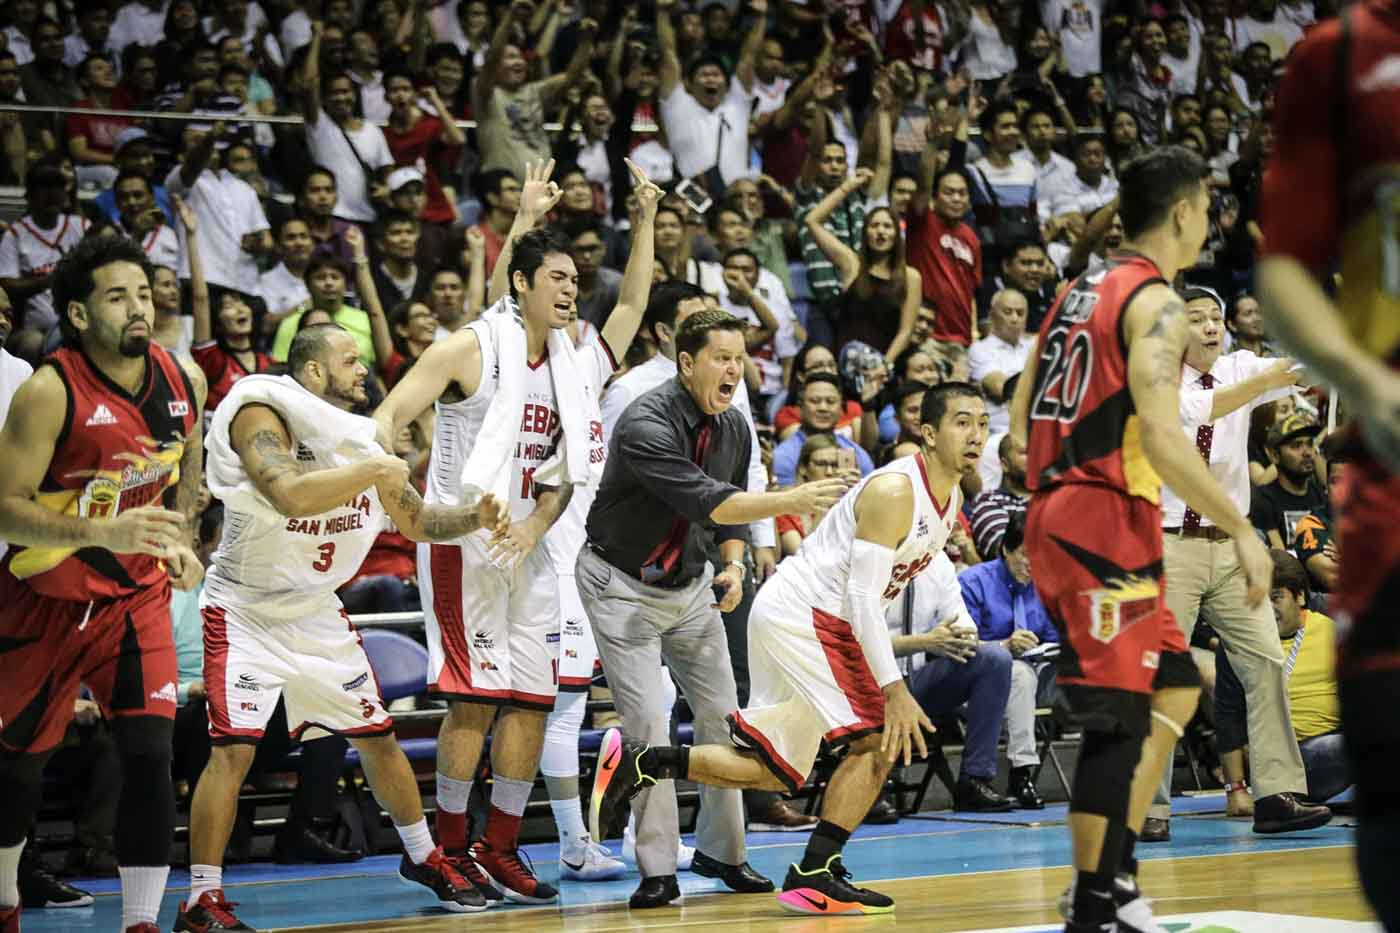 SUPPORT. The bench supporting the players on the court. Photo by Josh Albelda/Rappler